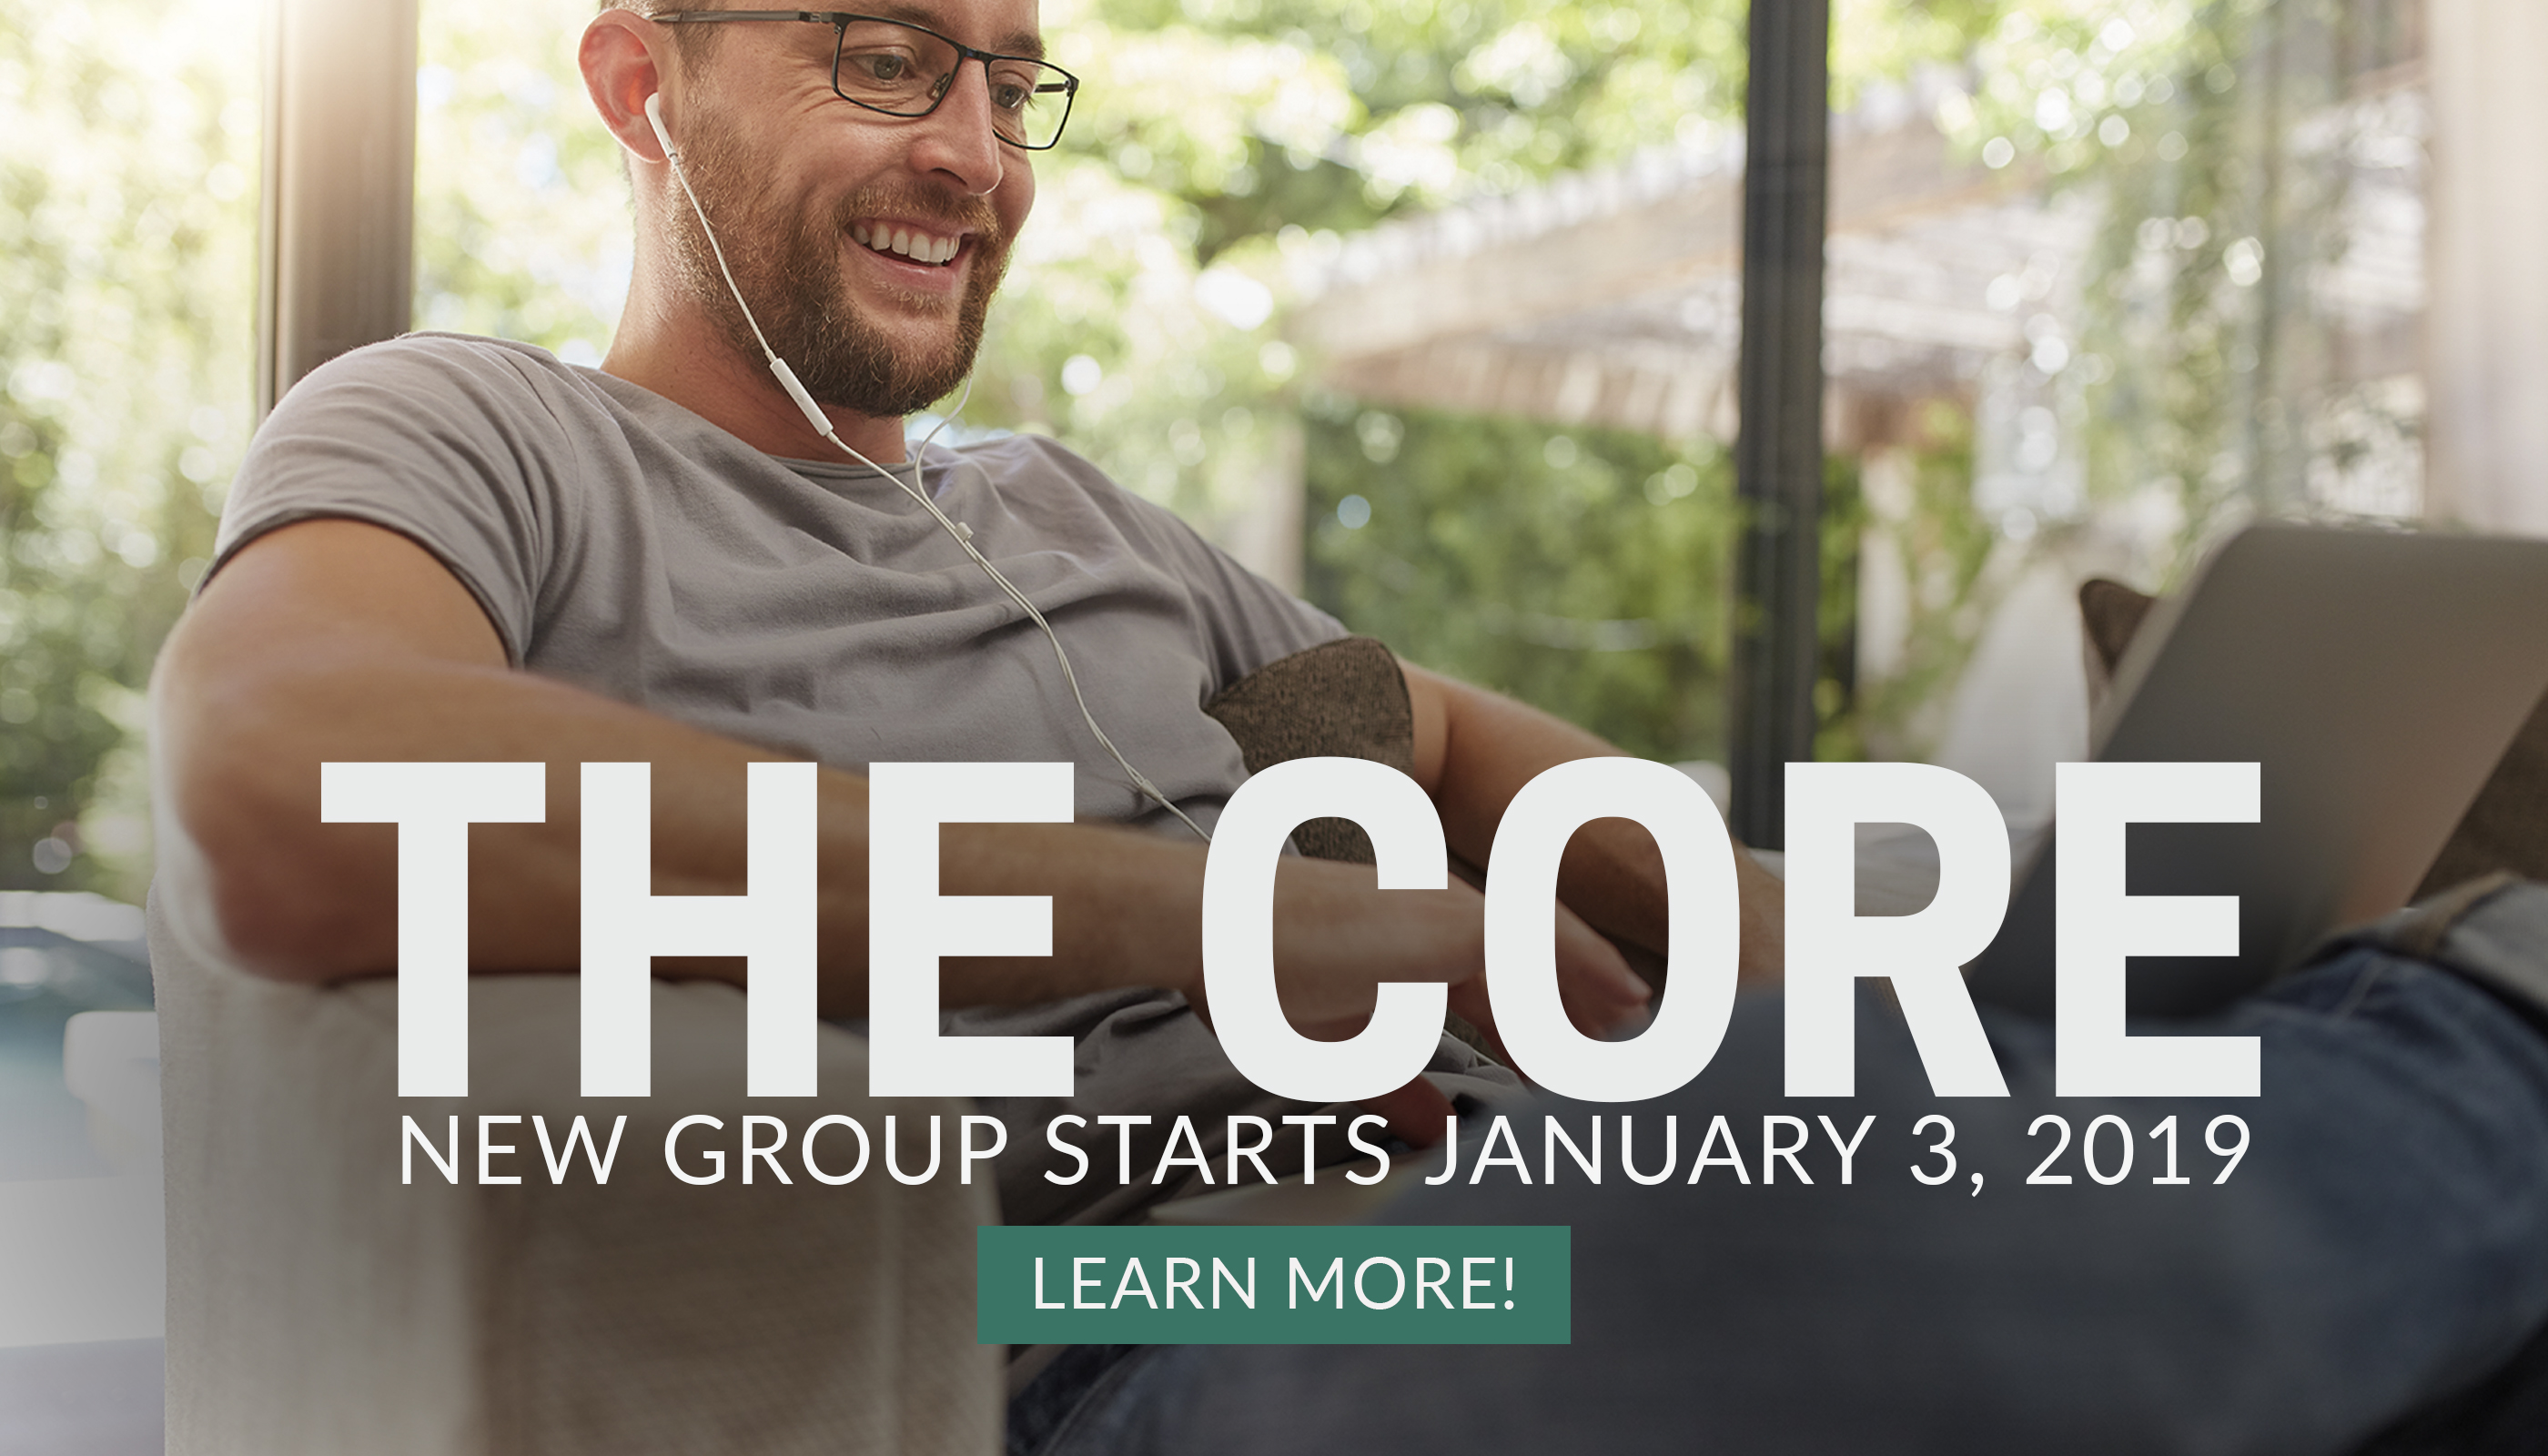 https://marriagerecoverycenter.com/wp-content/uploads/2018/10/The-Core-Jan-2019-Sidebar.jpg